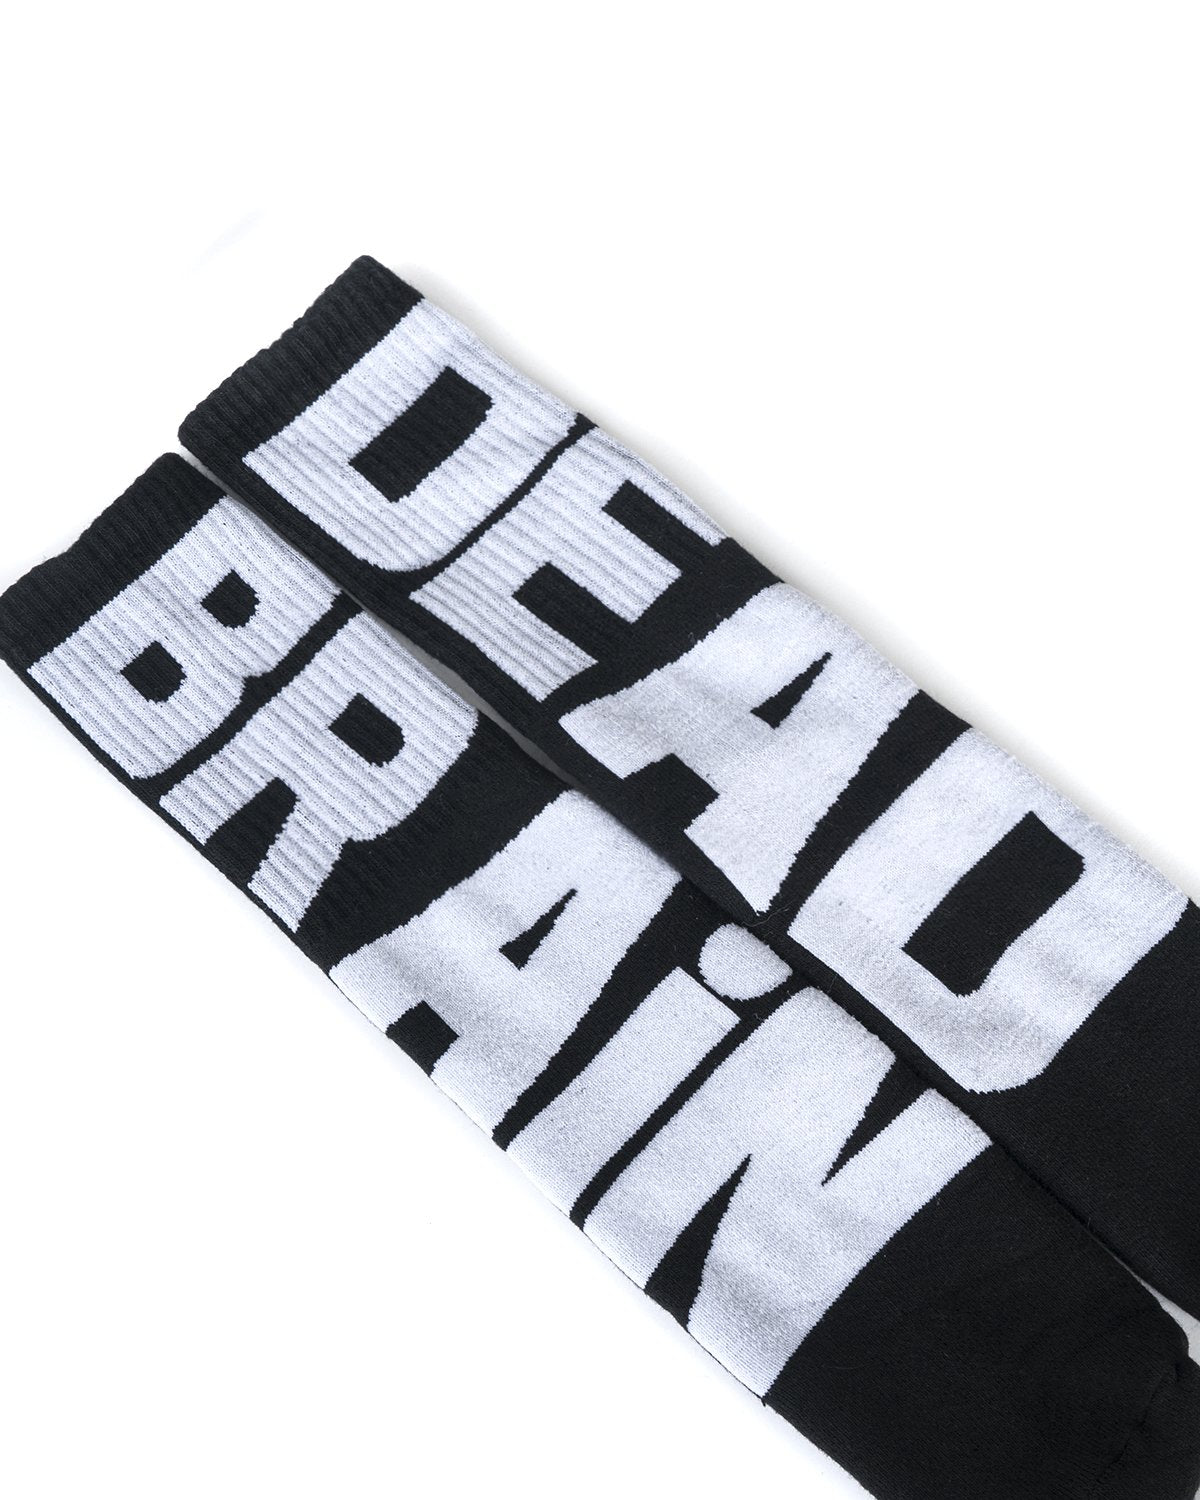 BRAINDEAD SOCKS MULTI O/S VERTICAL TYPE SOCKS - BLACK